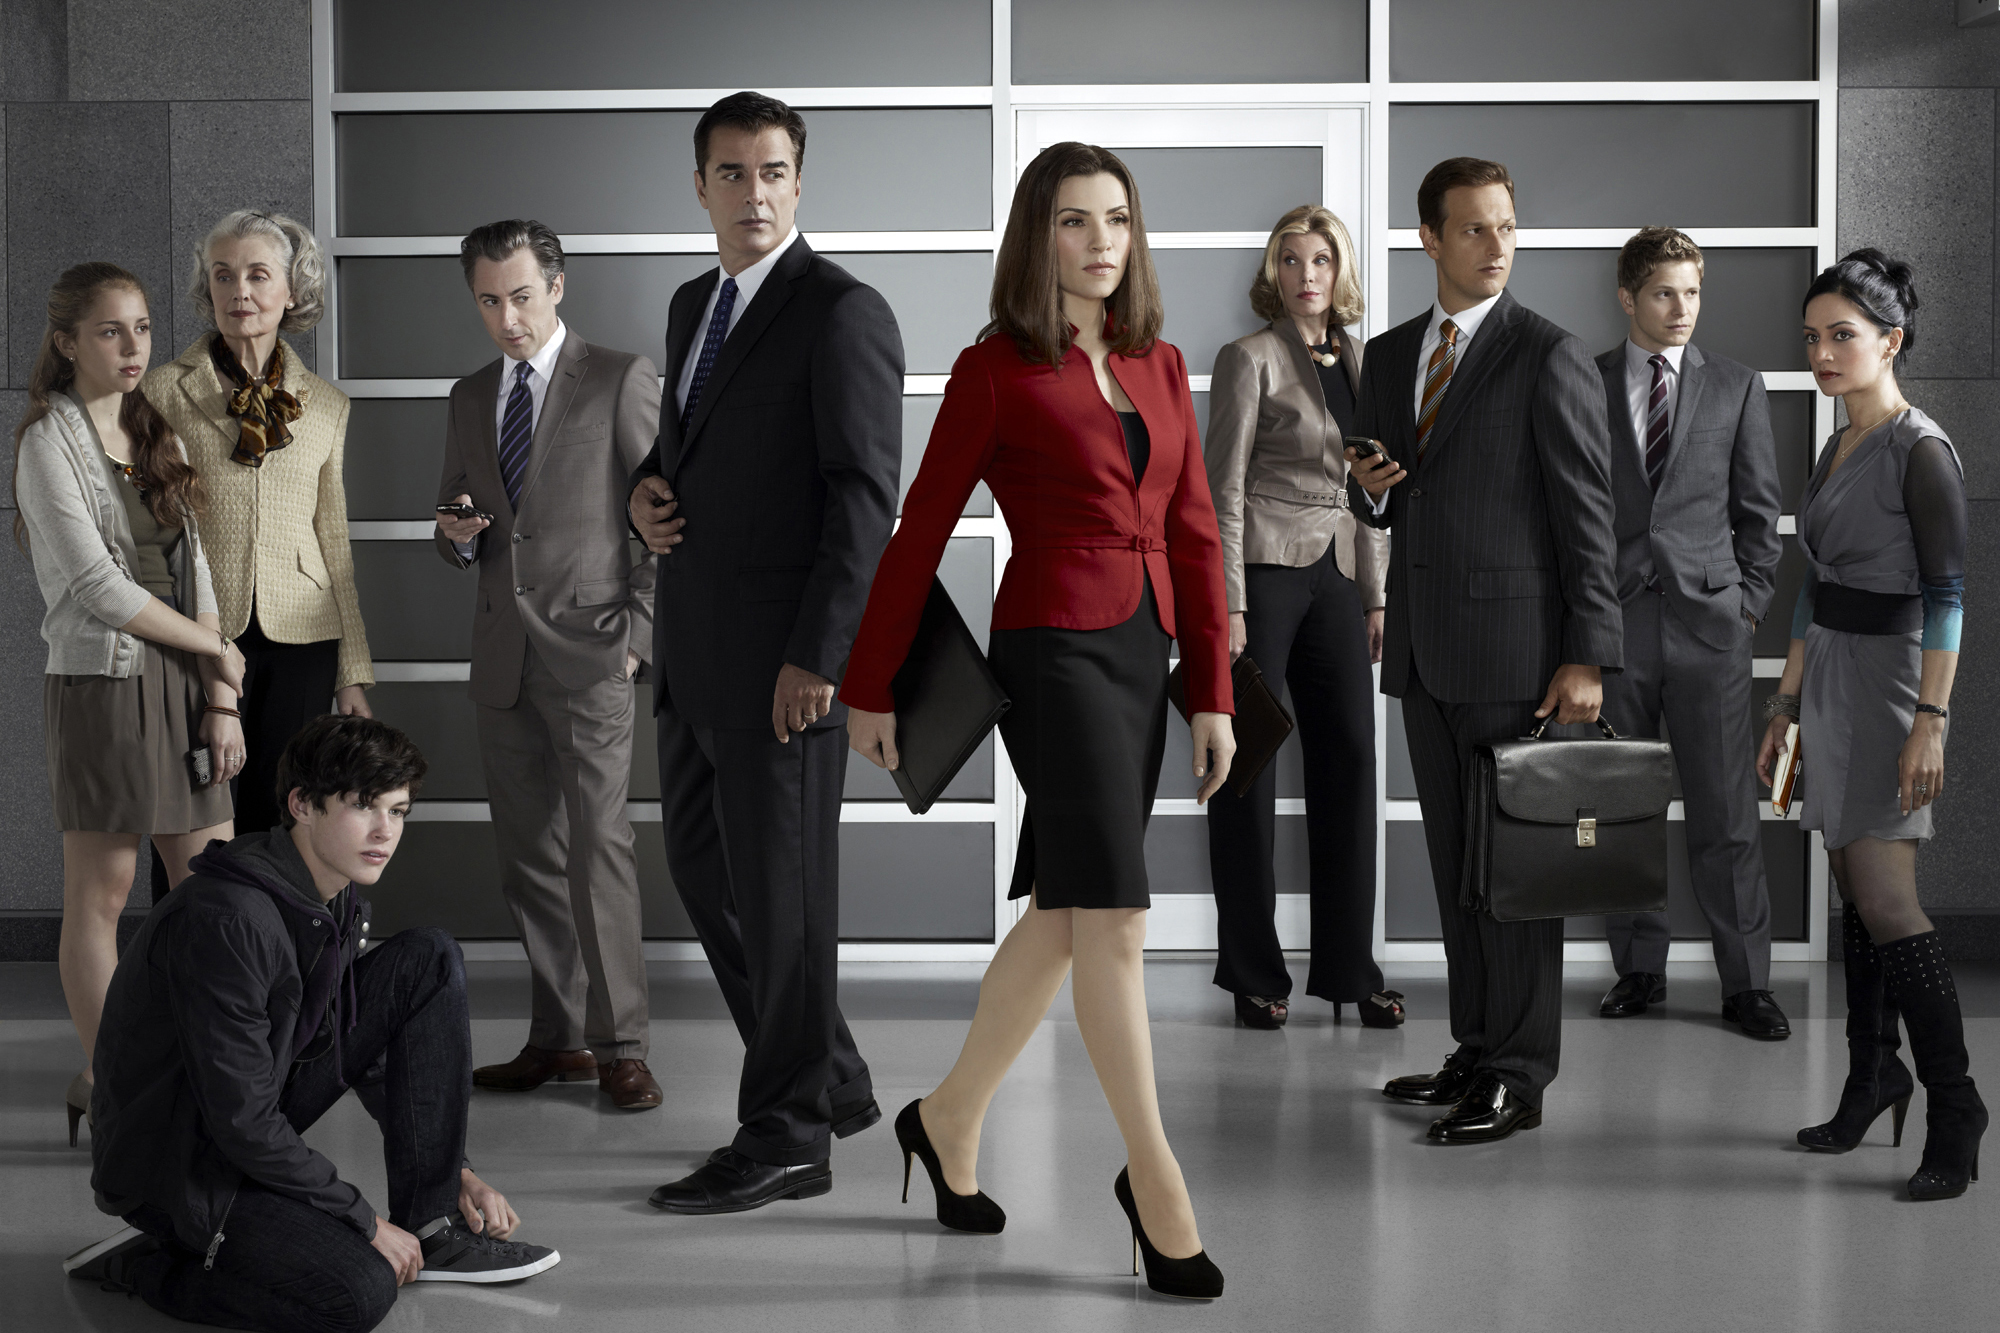 FOR TV WEEK - DO NOT PURGE! -- The cast of THE GOOD WIFE: from left to right: Makenzie Vega as Grace Florick, Mary Beth Peil as Jackie Florick, Graham Phillips as Zach Florick, Alan Cumming as Eli Gold, Chris Noth as Peter Florick, Julianna Margulies as Alicia Florick, Christine Baranski Diane Lockhart, Josh Charles as Will Gardner, Matt Czuchry as Cary Agos, and Archie Panjabi Kalinda Sharma Photo: Justin Stephens/CBS ©2010 CBS Broadcasting Inc, All Rights Reserved. *********** IMAGE EMBARGO. THIS PHOTO MUST NOT BE USED UNTIL AFTER 9/12/2010 Tv Week Fall Preview *************